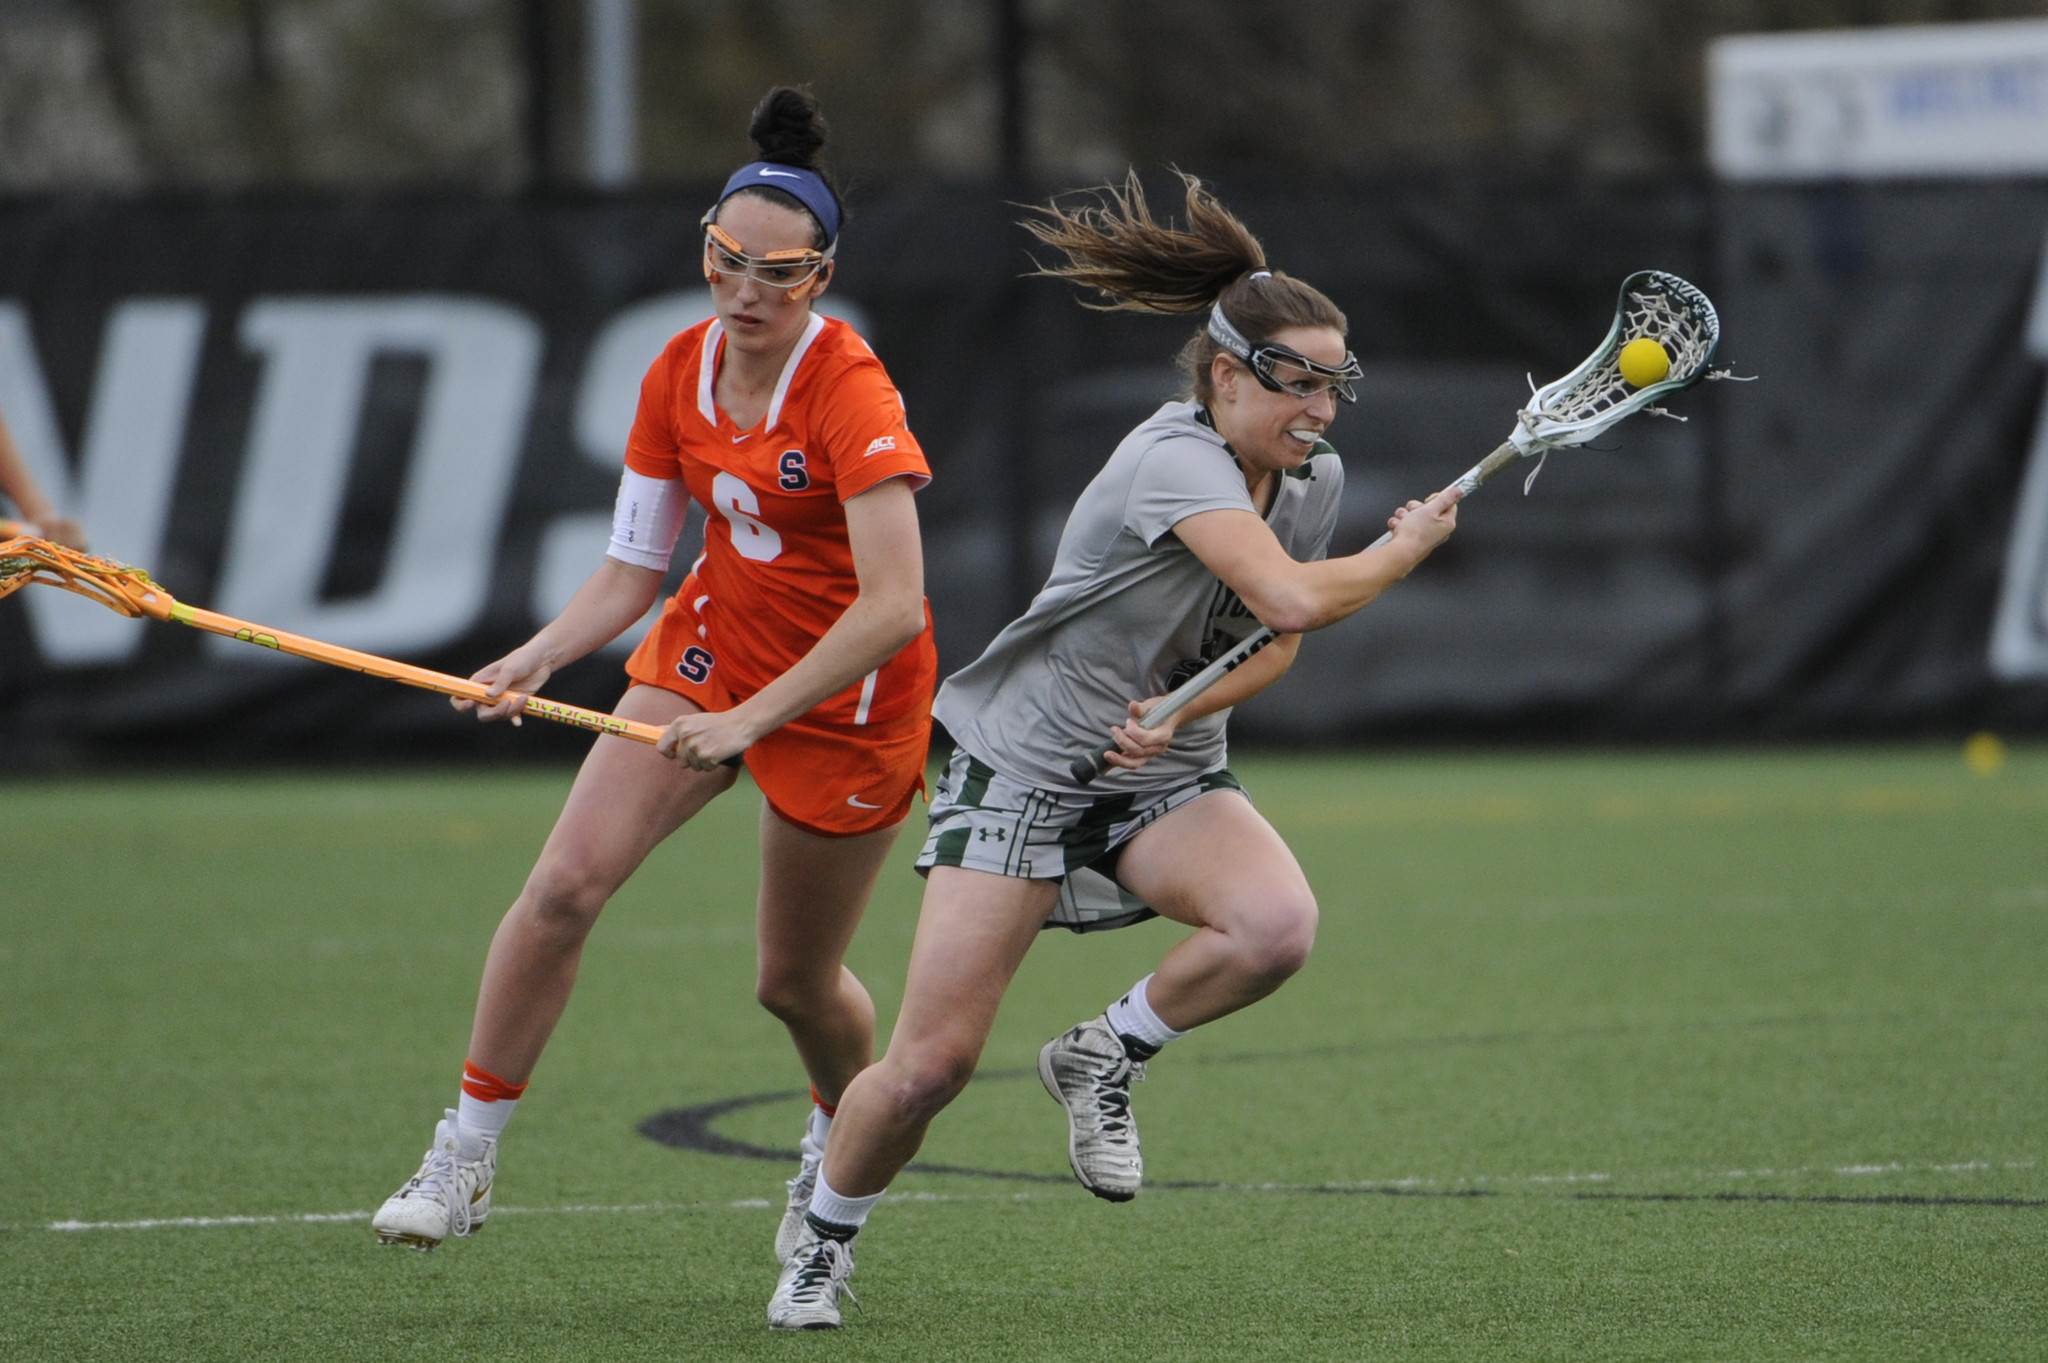 syracuse women Get latest news and analysis of syracuse university orange women's basketball,  lacrosse, and other sports get schedule, roster, stats, photos and more at.